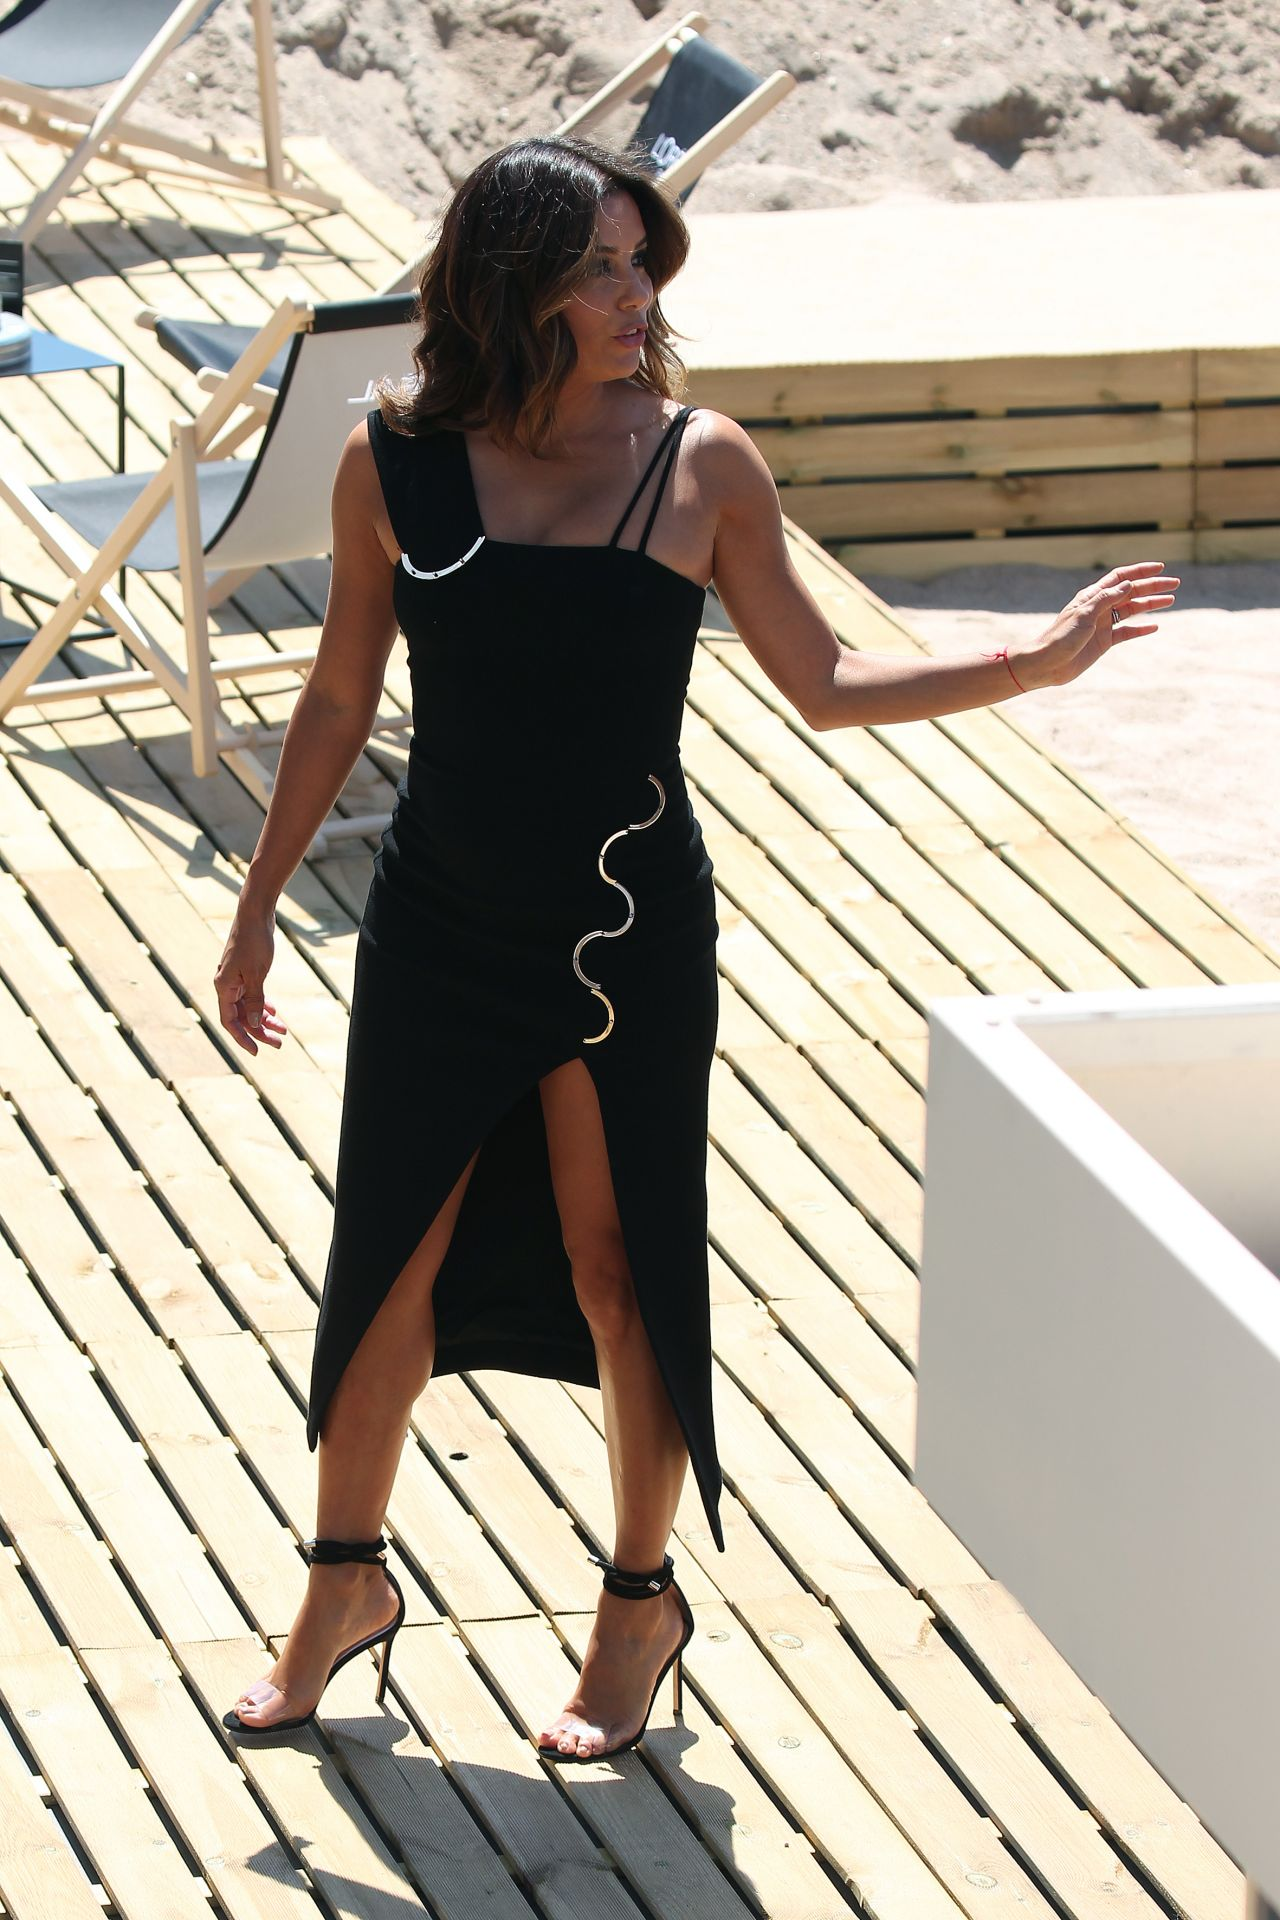 beach hotels in cannes france : jennmomoftwomunchkins